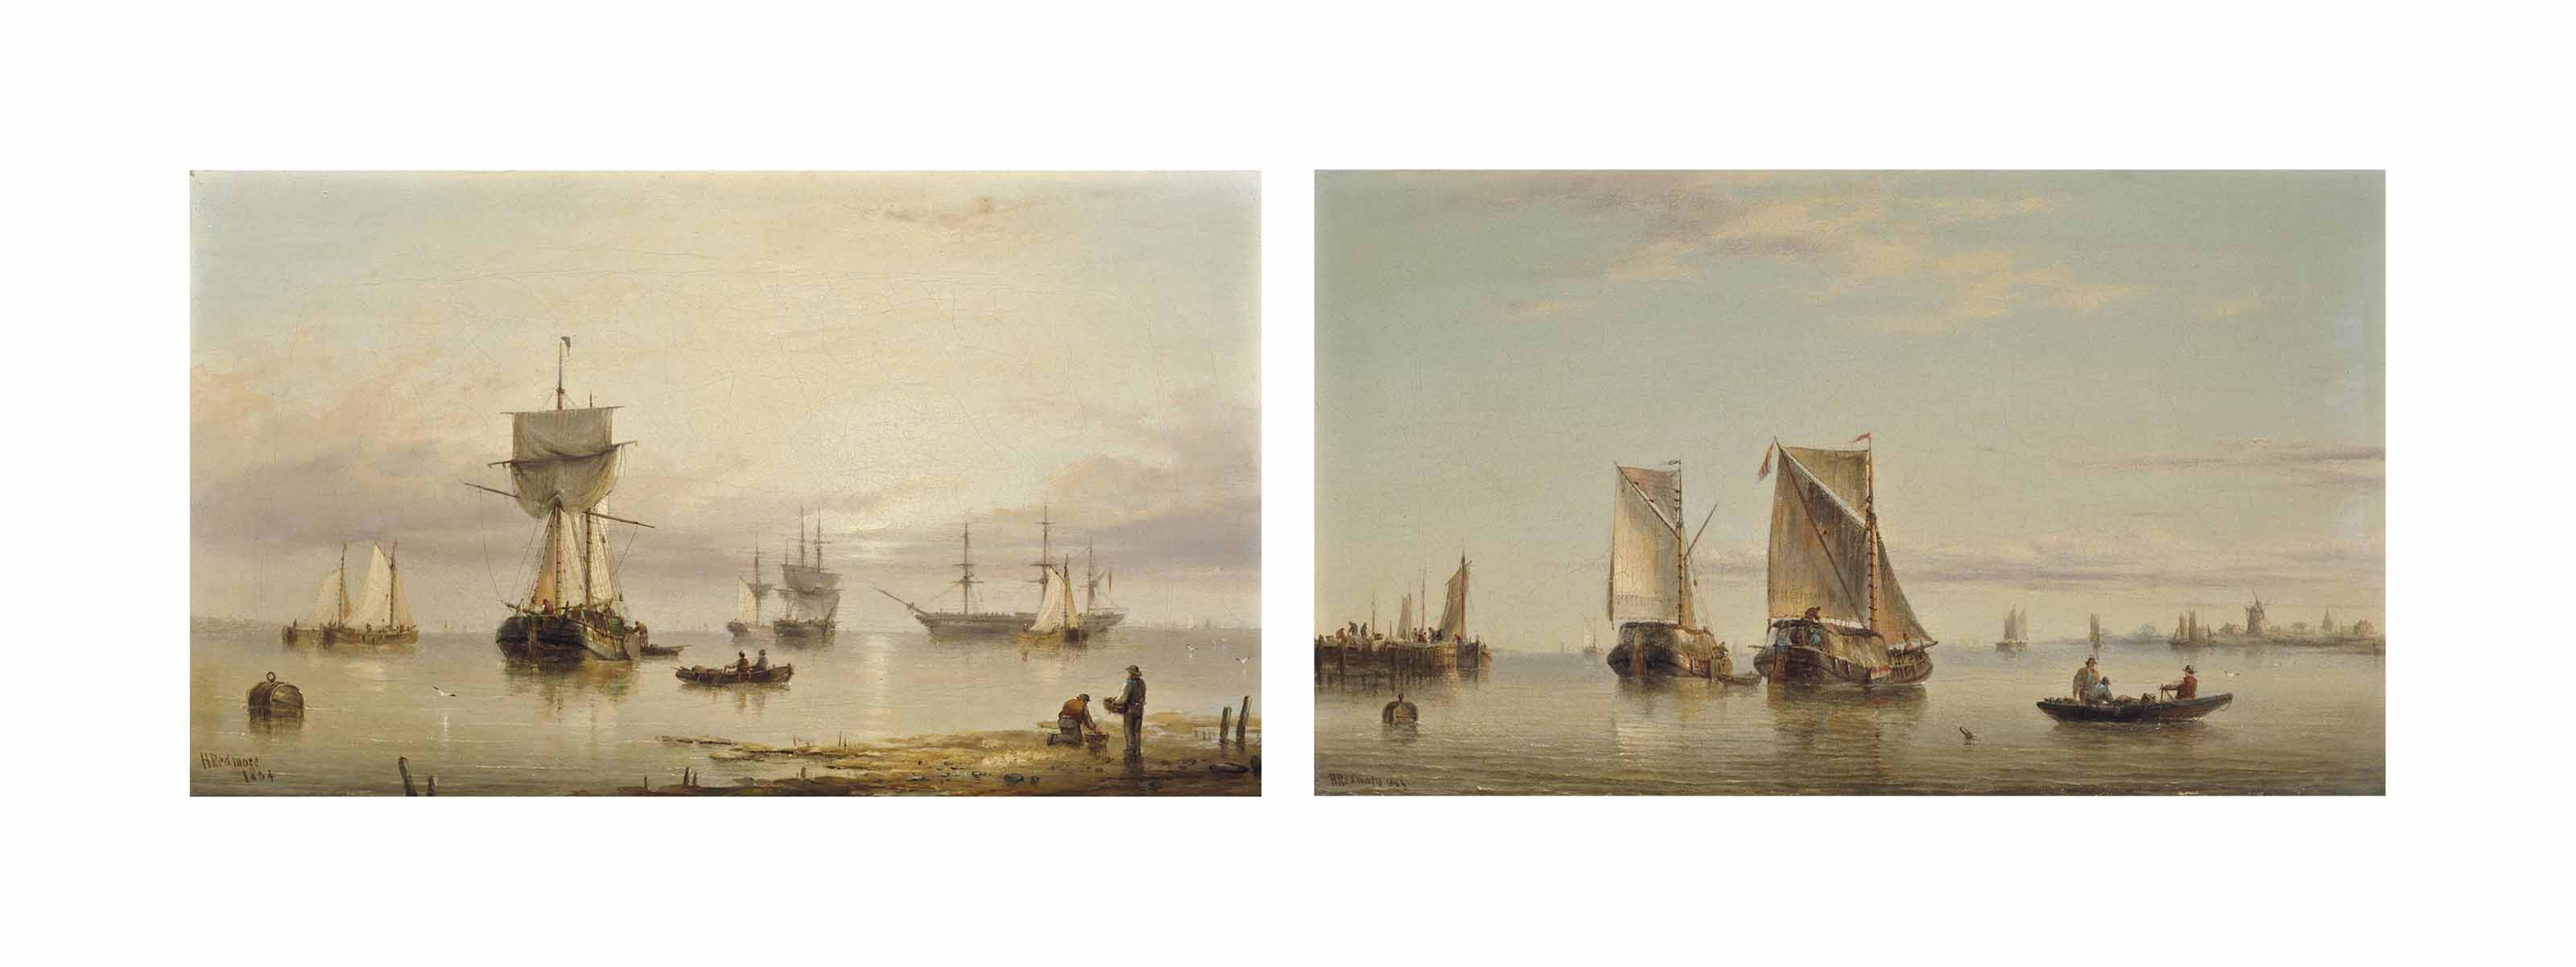 Waiting for the tide; and Dutch hay barges at the mouth of the Scheldt (both illustrated)